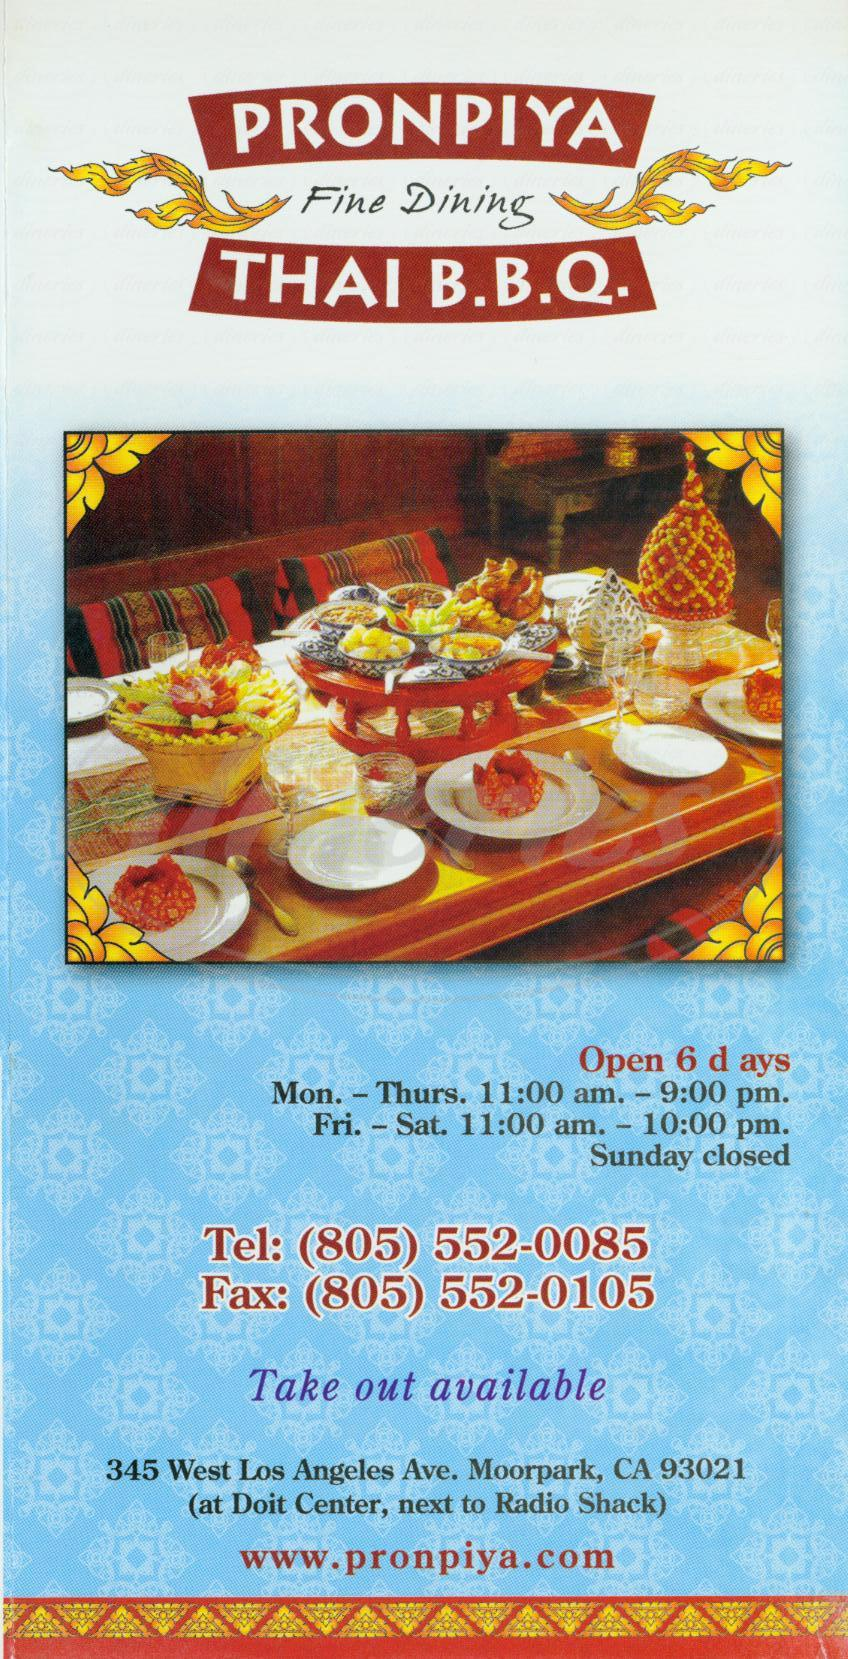 menu for Pronpiya Thai Bbq